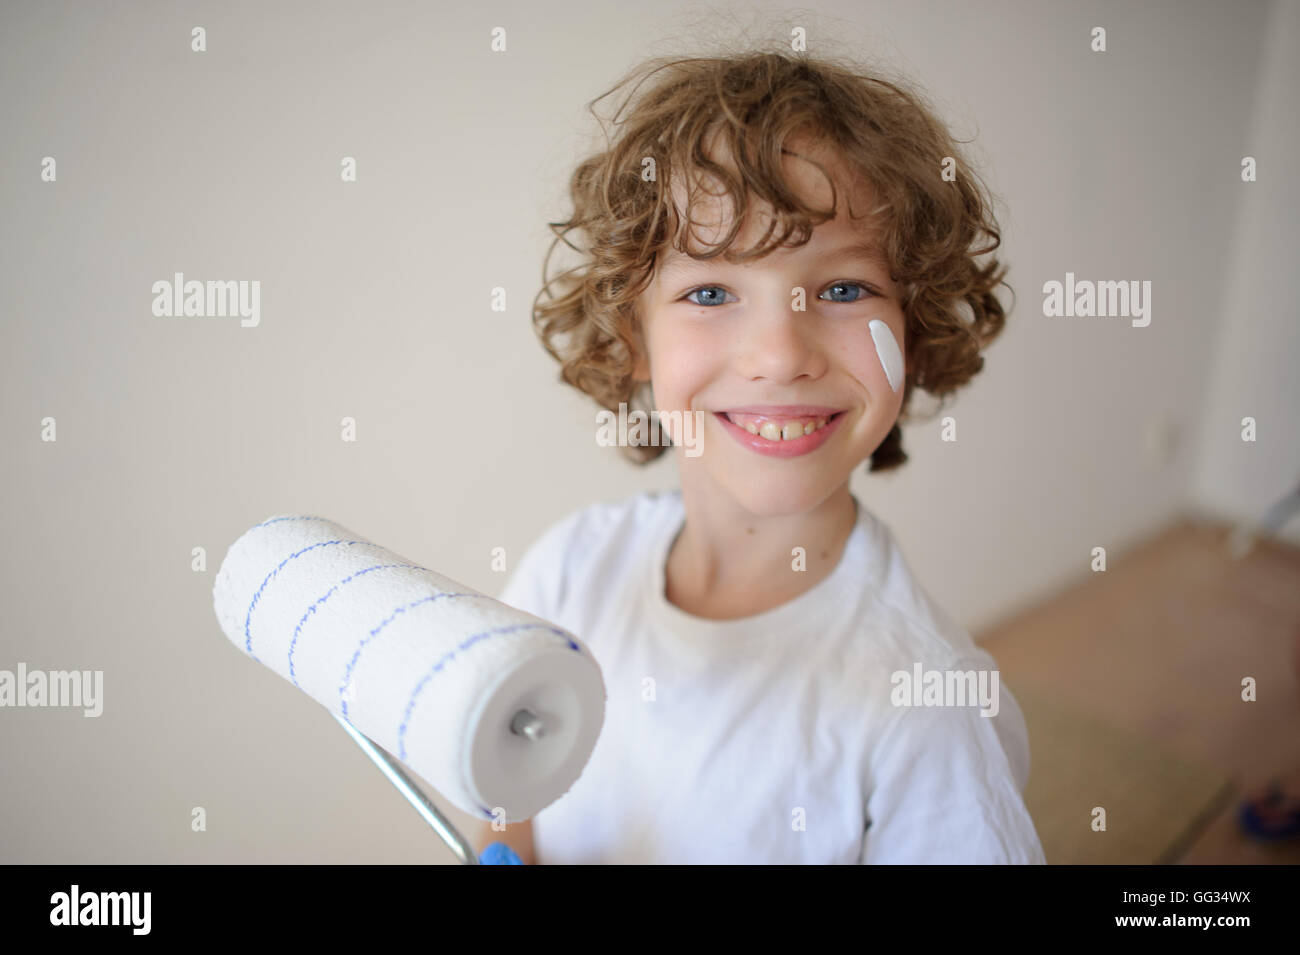 Cute little boy holding a roller for painting. His cheek was smeared with white paint. A boy with a cheerful smile, - Stock Image